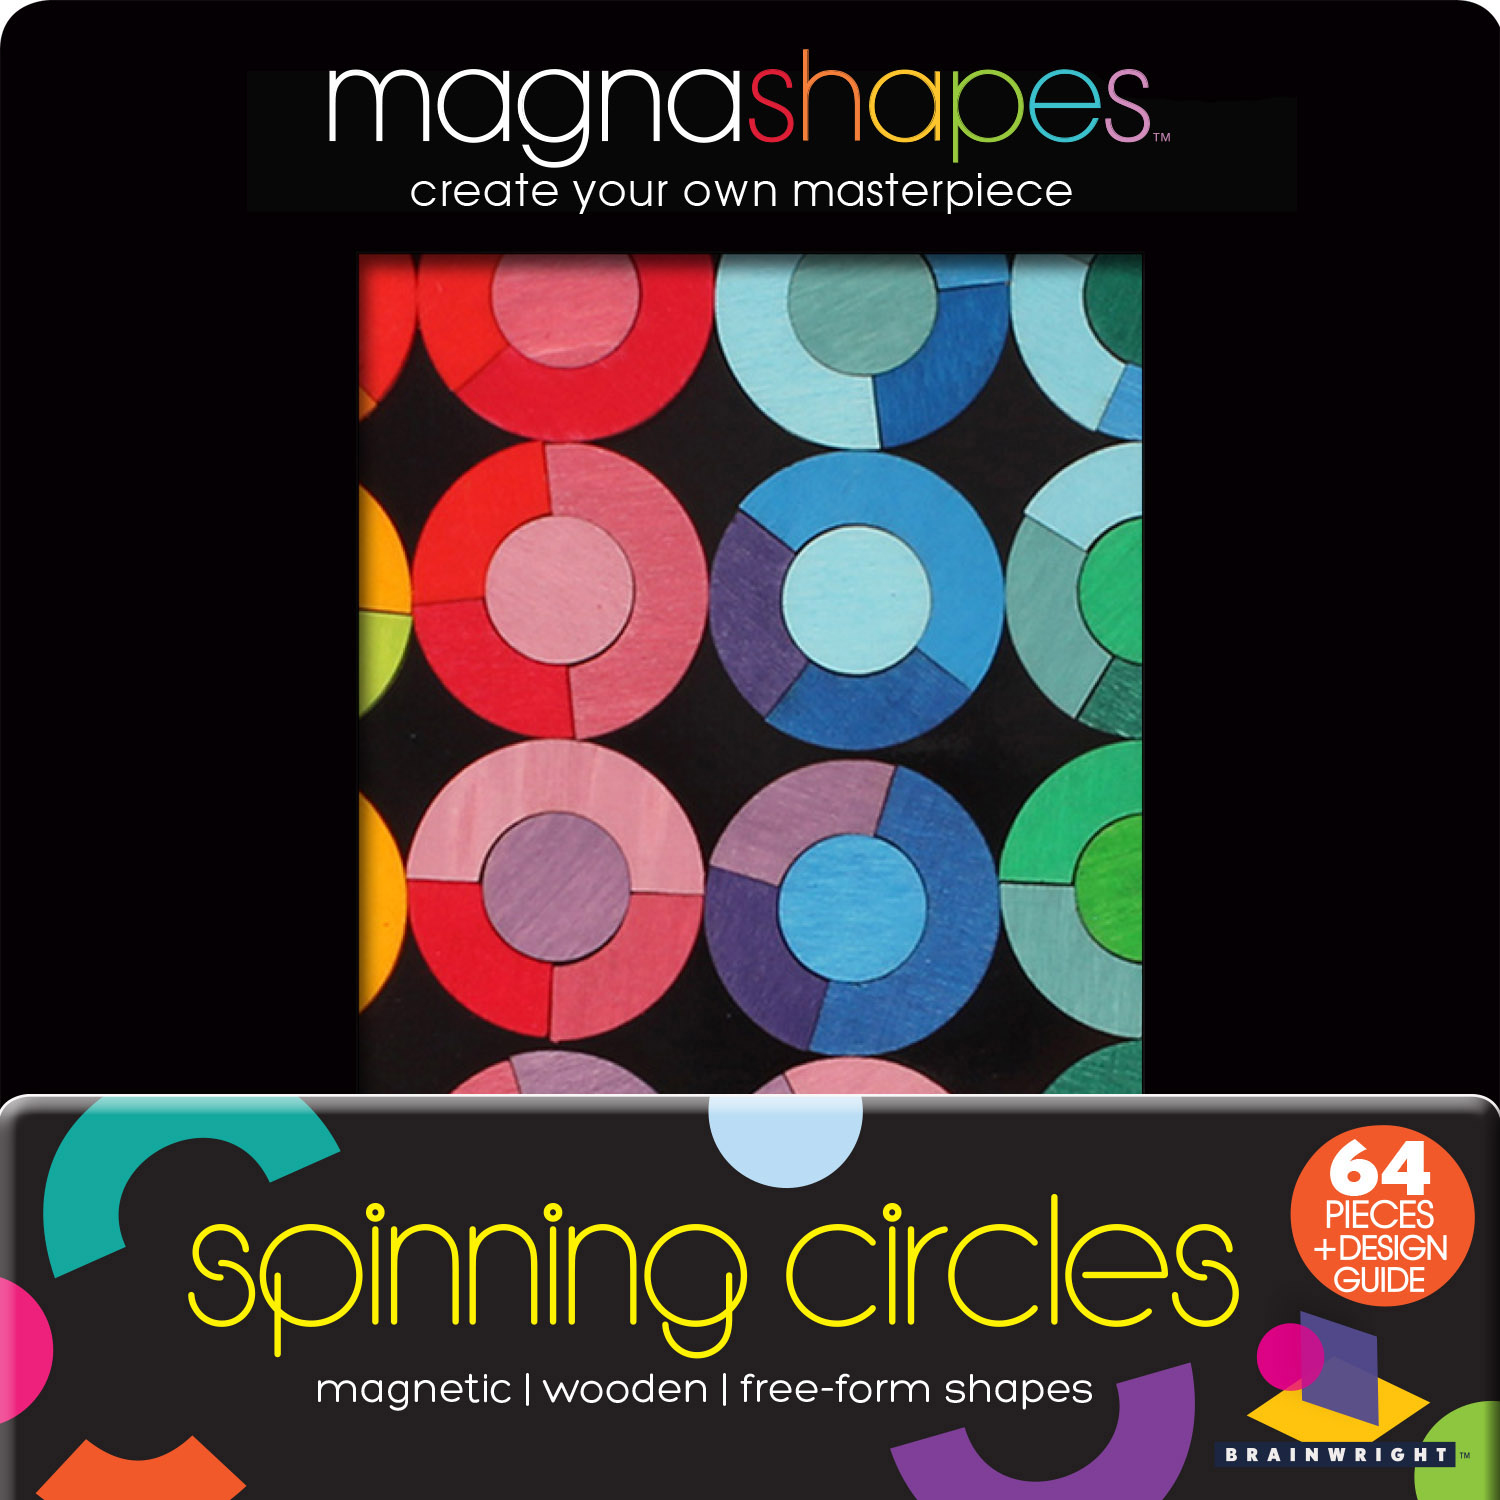 Spinning Circles (Magna Shapes) Graphics / Illustration Wooden Jigsaw Puzzle